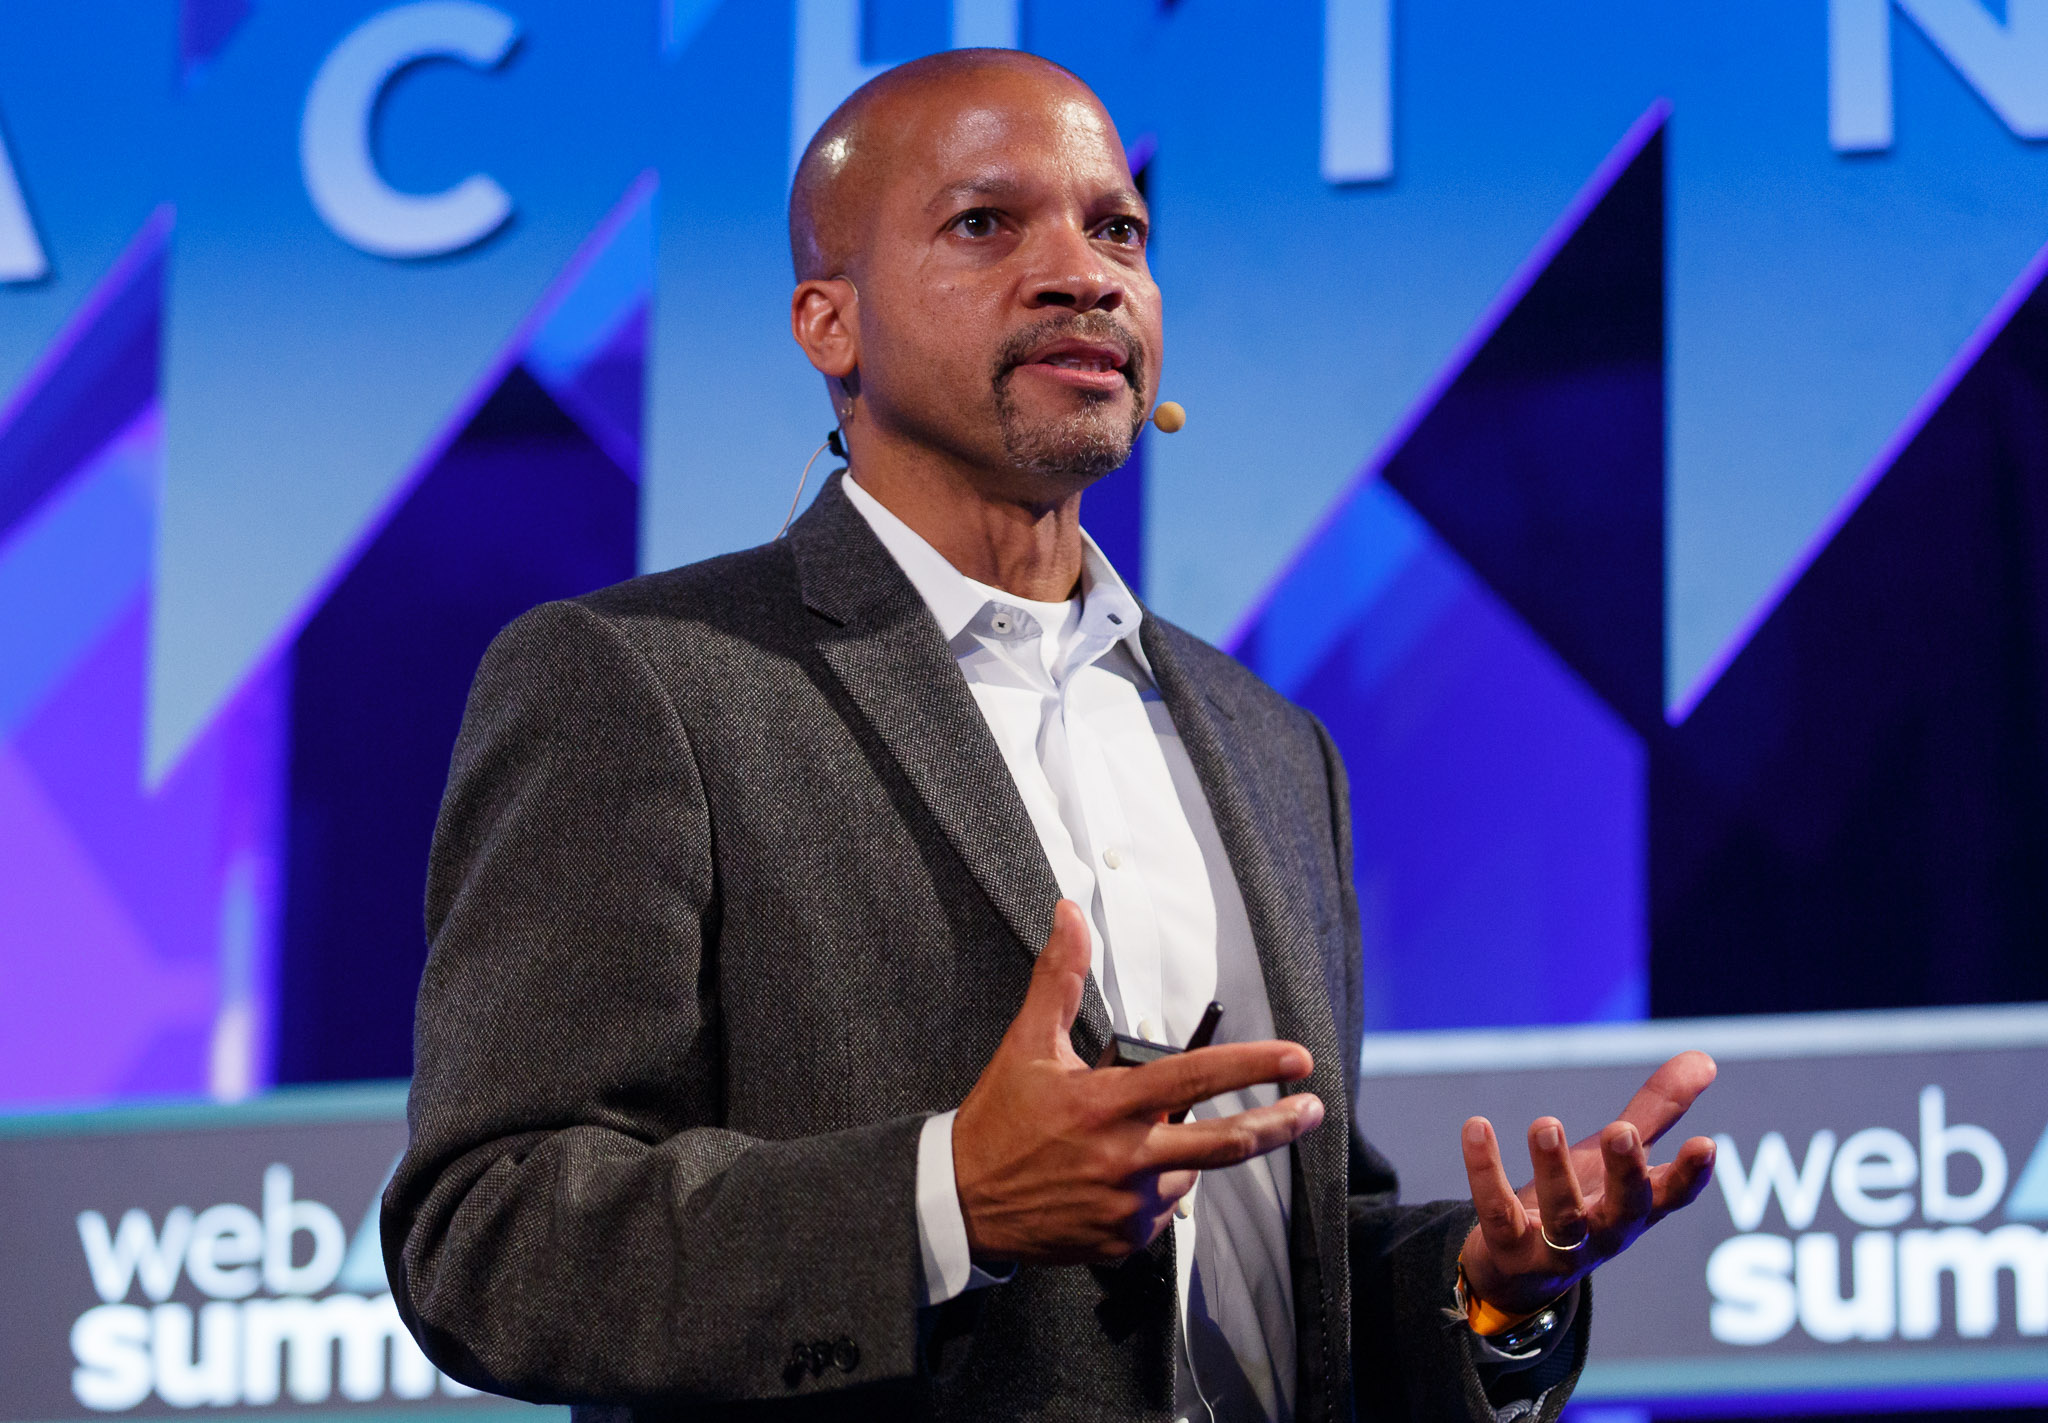 Don Butler, Ford's executive director of connected vehicles and services, speaks at Web Summit 2015.